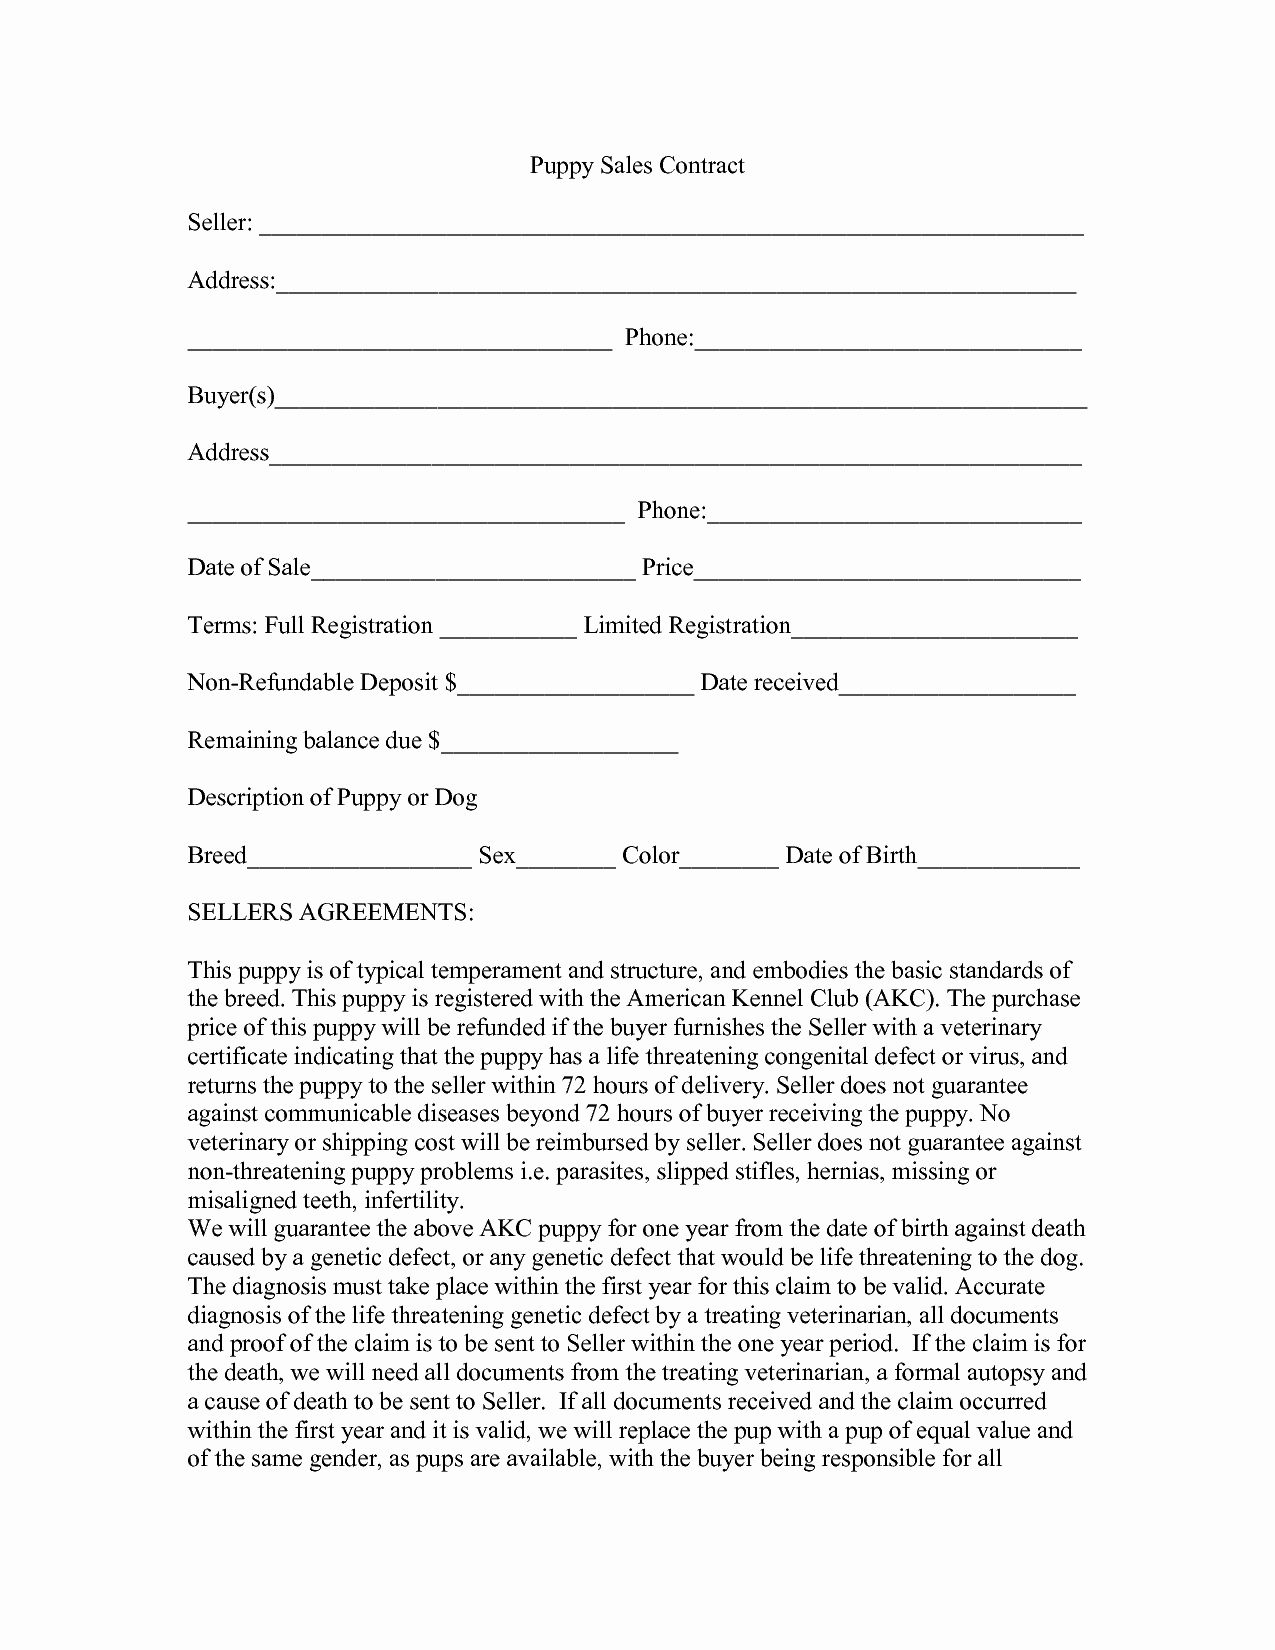 Puppy Sales Contract Template in 2020 Contract template